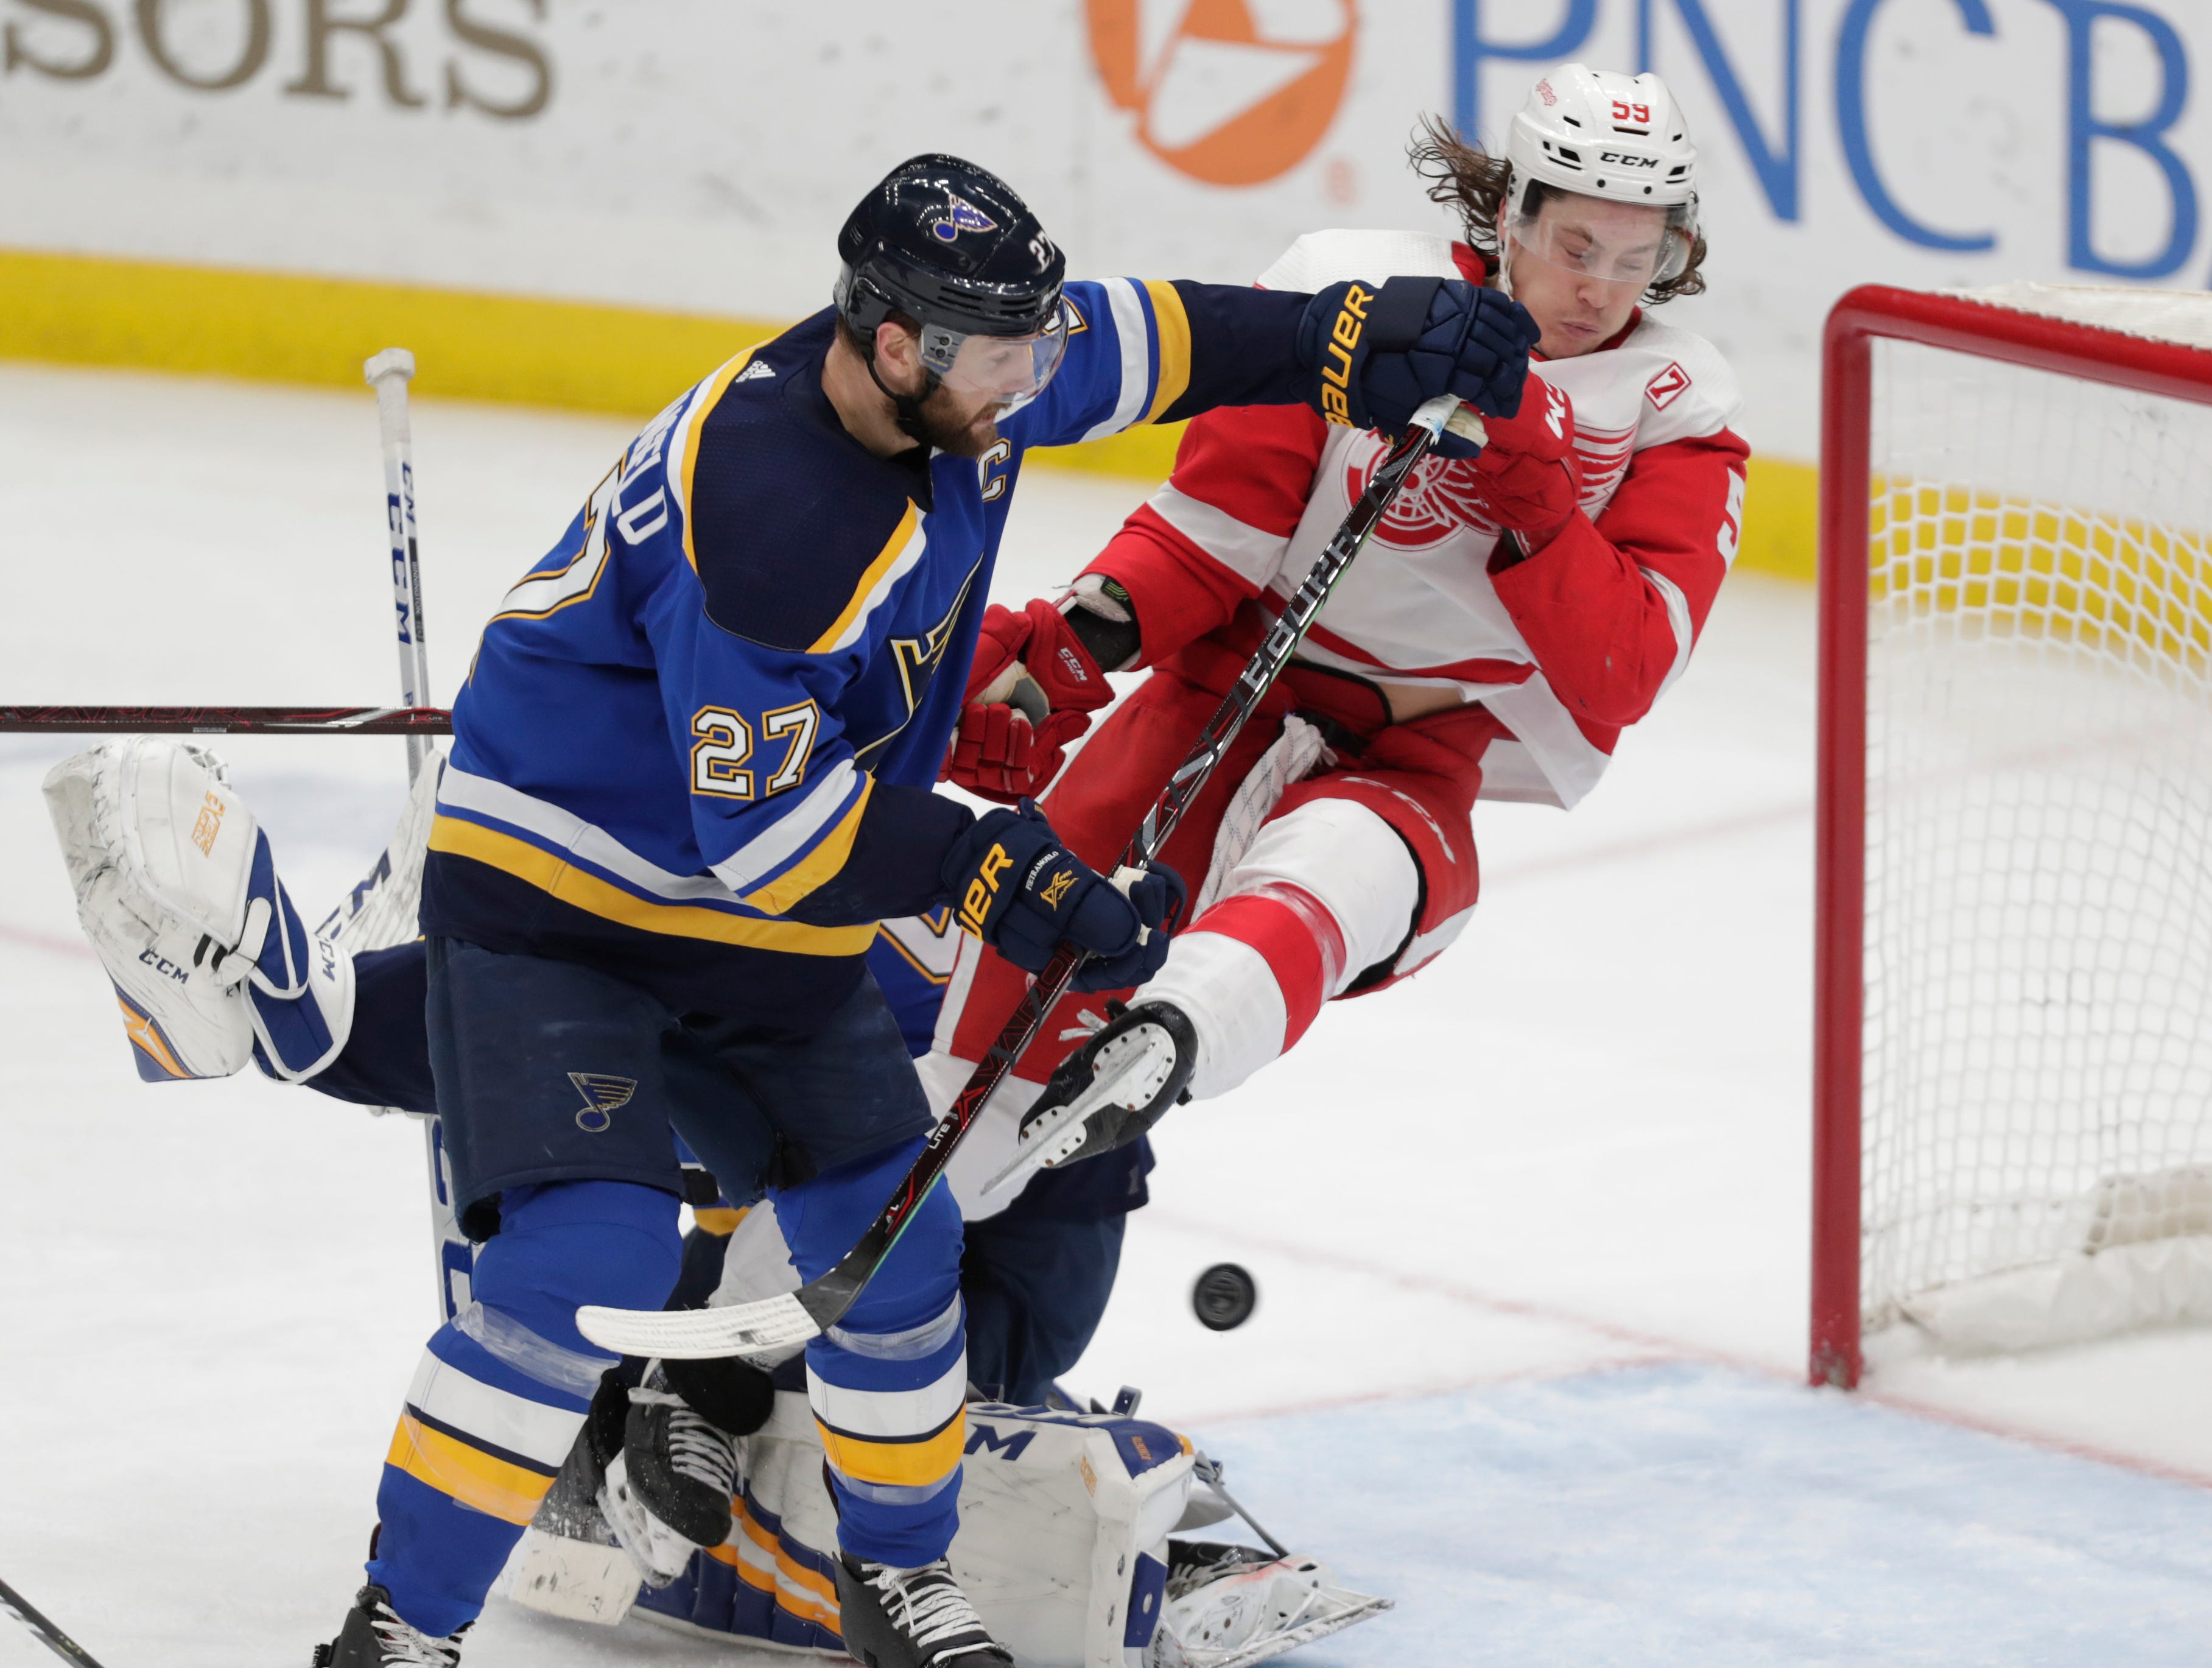 St. Louis' Alex Pietrangelo knocks Detroit's Tyler Bertuzzi off his feet as a shot from Thomas Vanek goes into the net for a goal in the third period of their game Thursday, March 21, 2019, in St. Louis. The Blues won, 5-2.